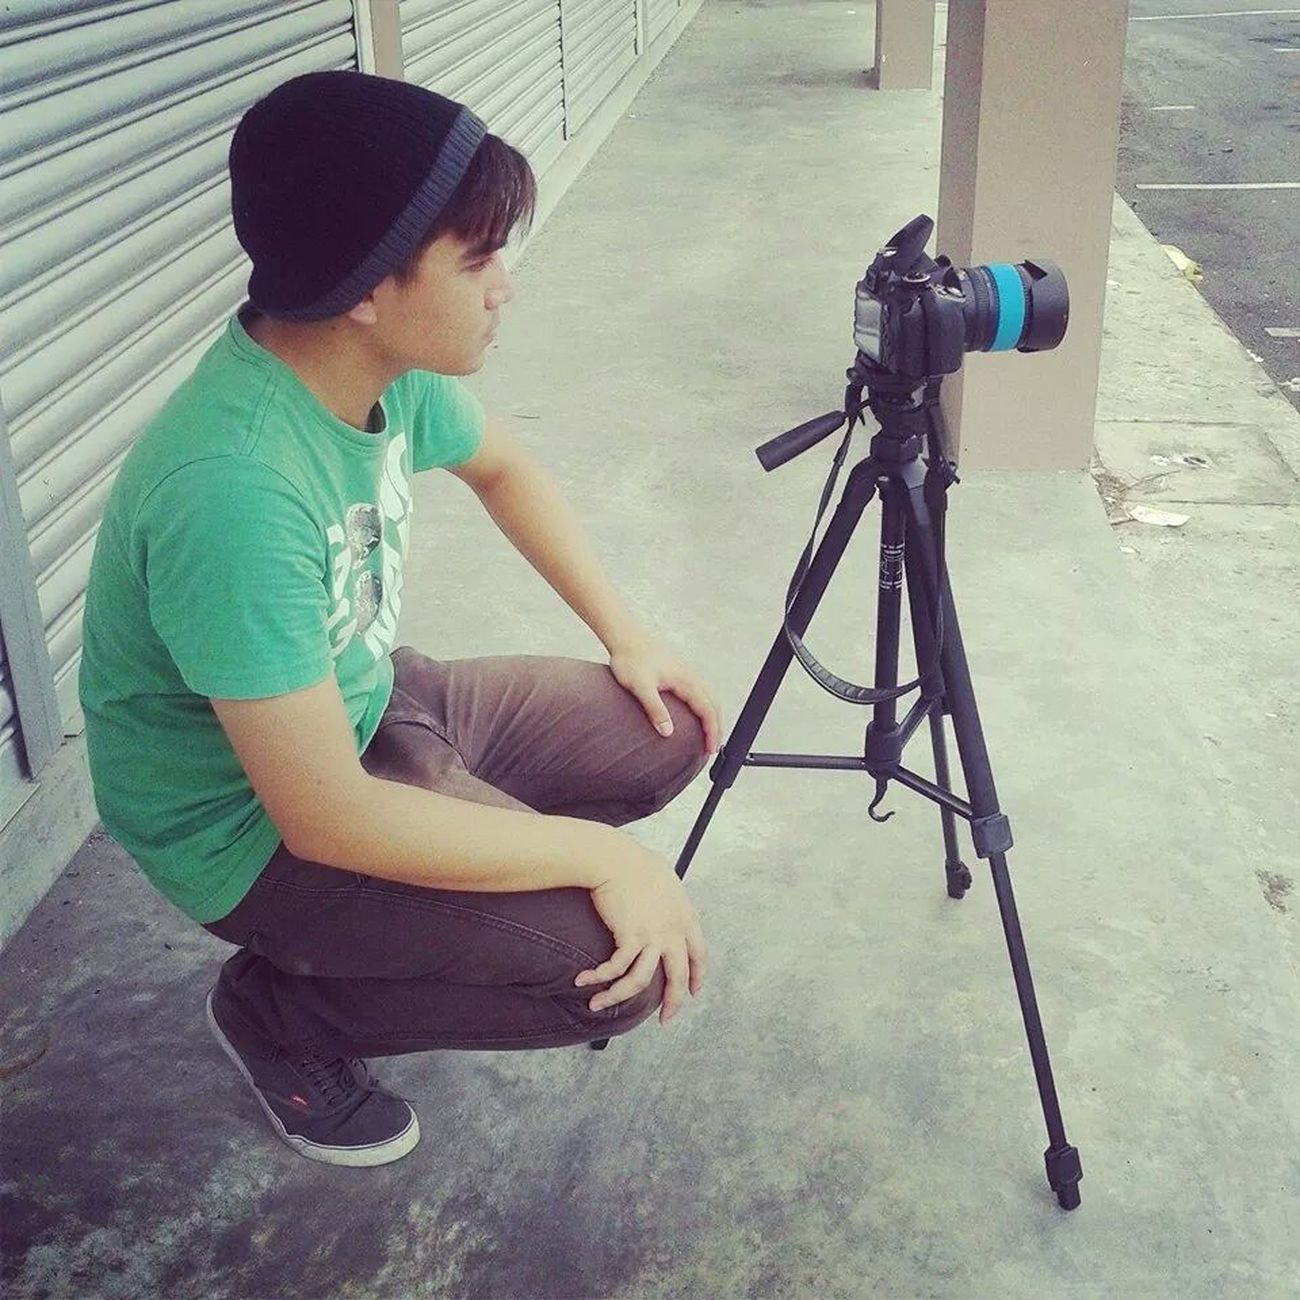 shooting for my Stopmotion Animation.